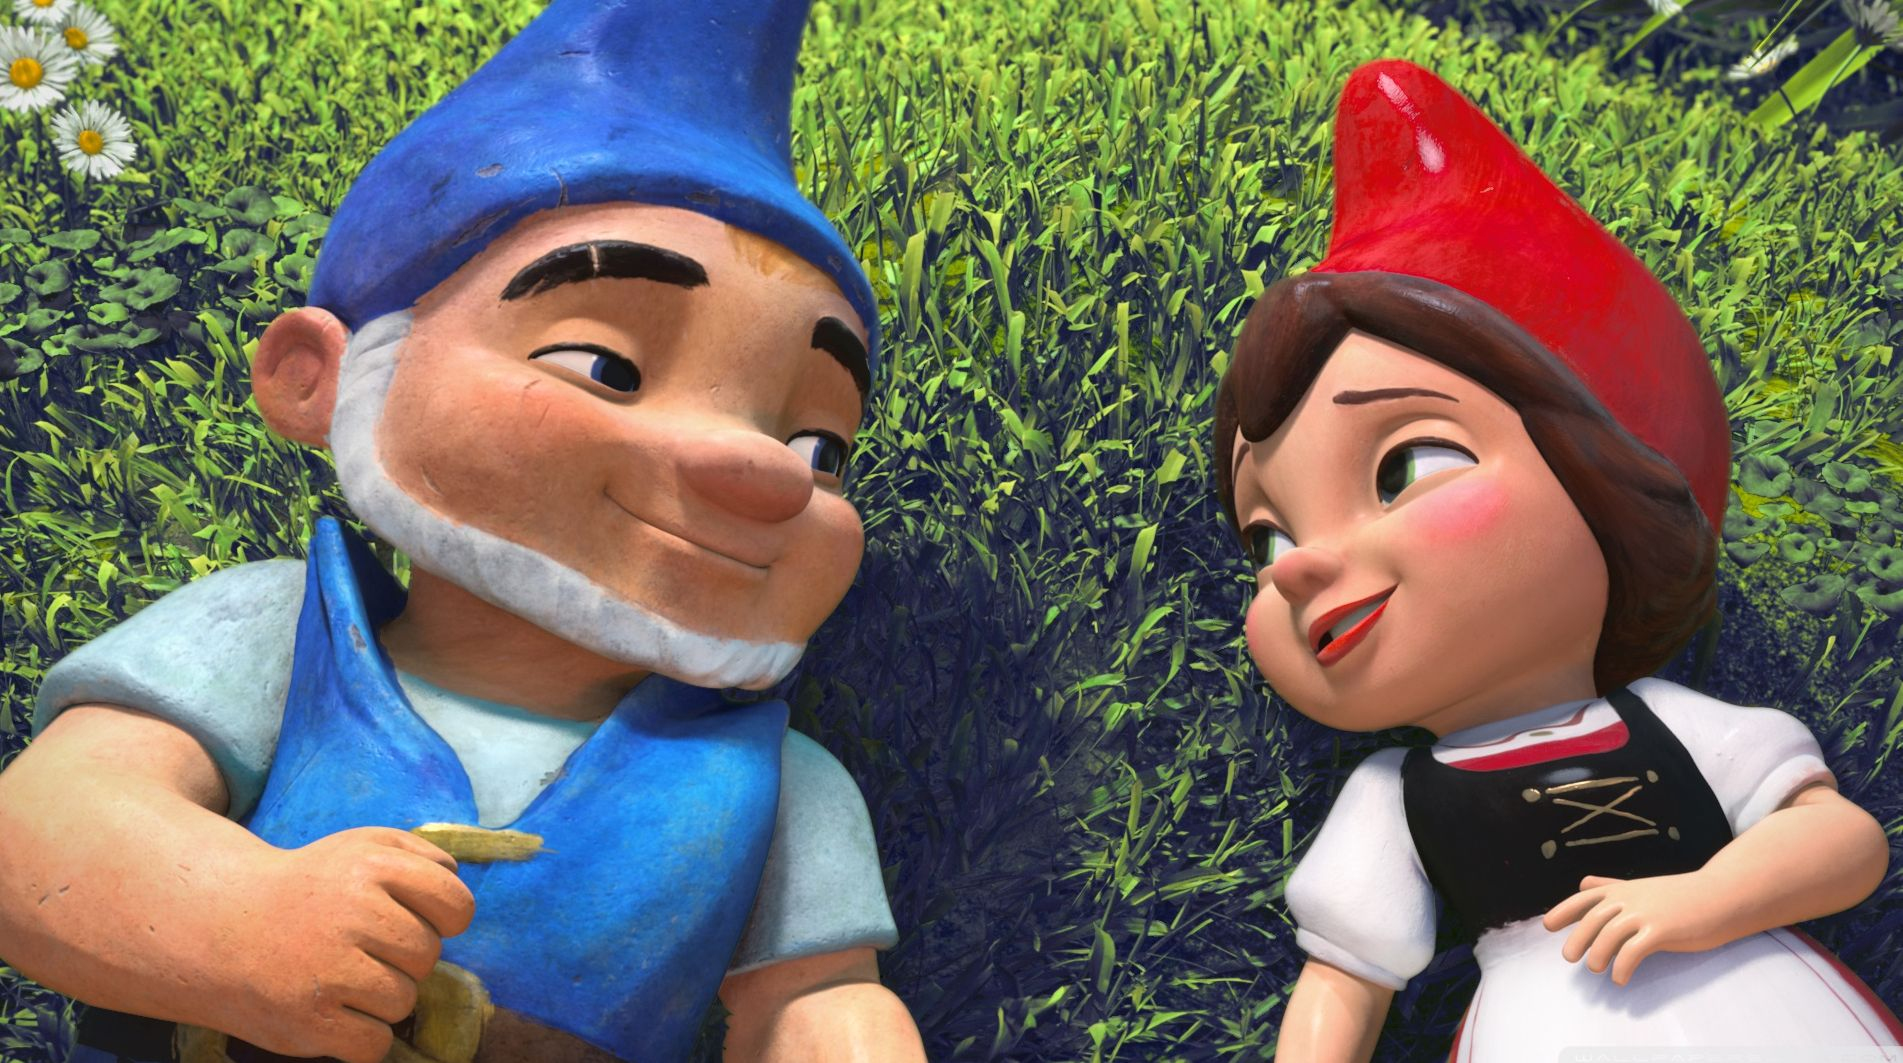 Image from Gnomeo and Juliet